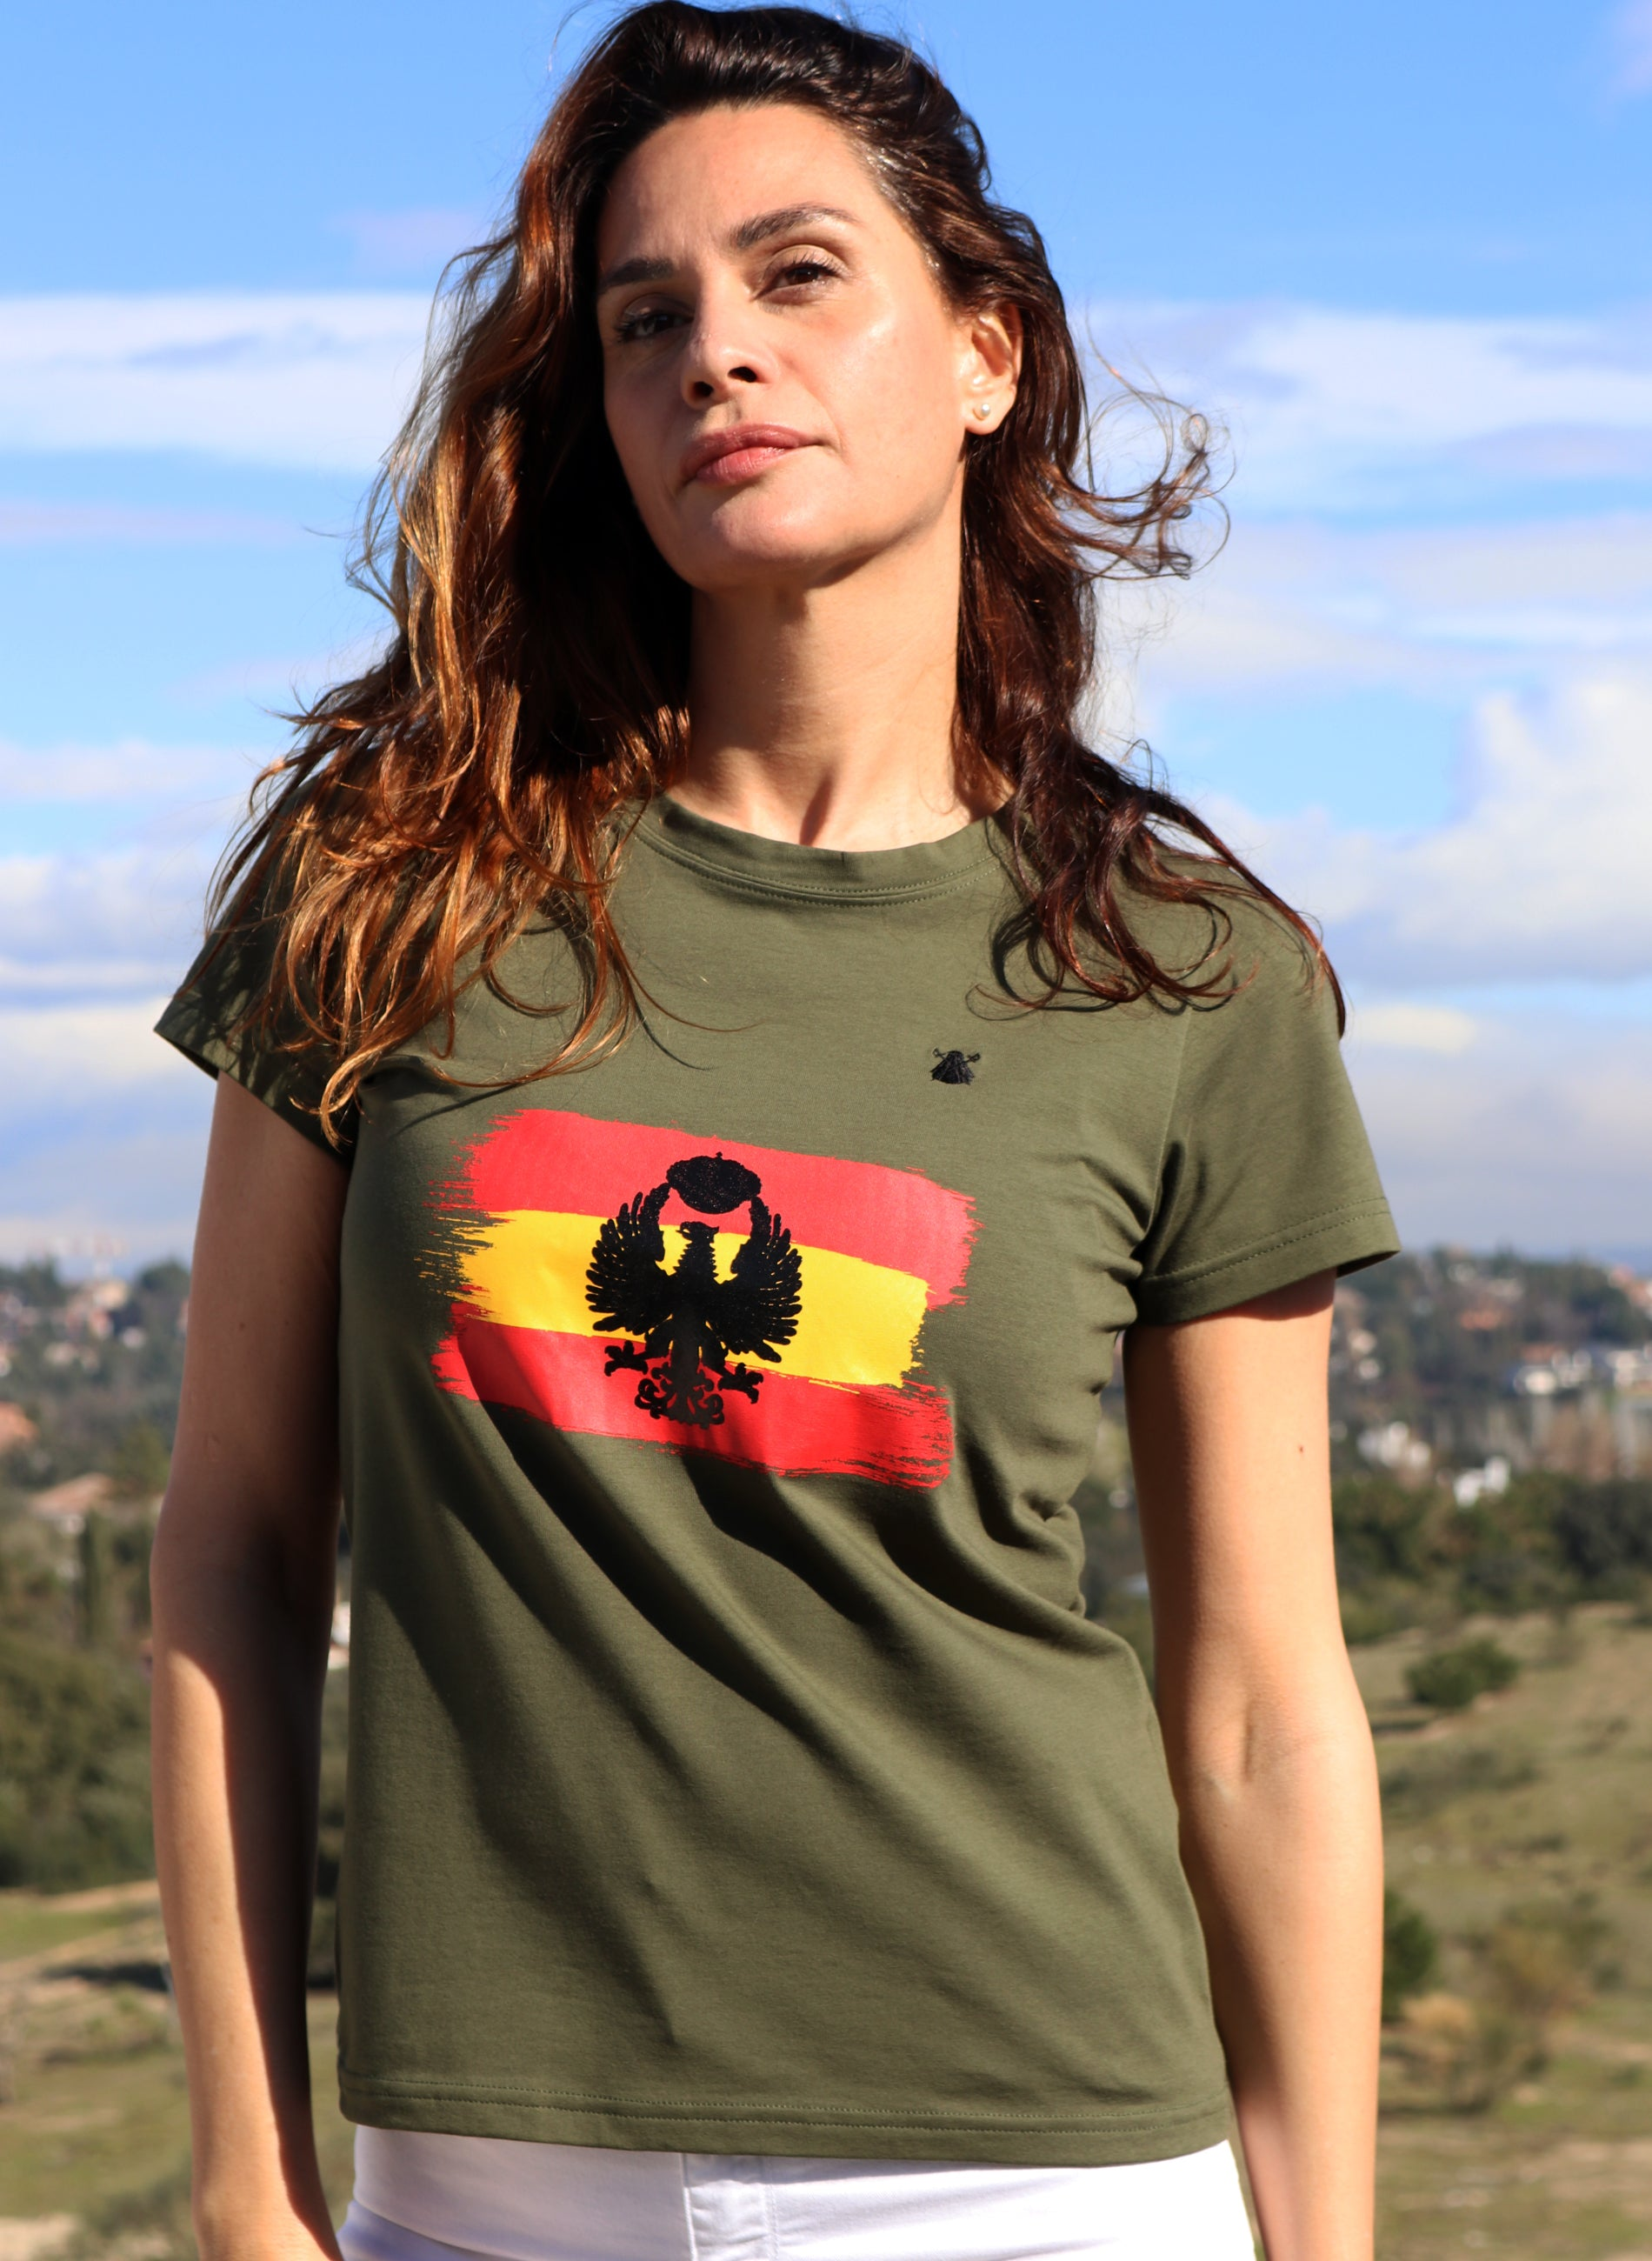 Kaki T-shirt Woman Tribute to the Army